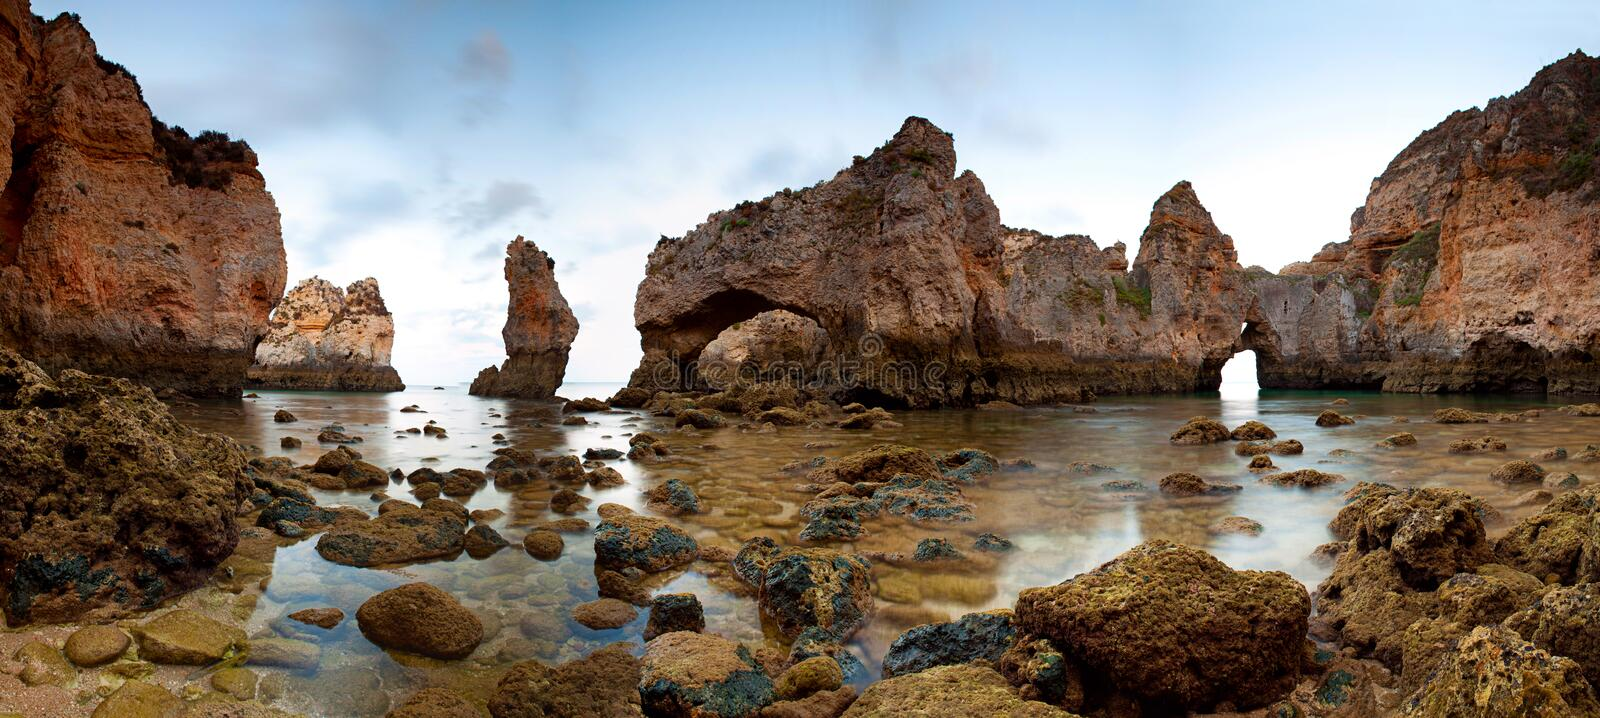 Download Ponta da Piedade stock photo. Image of rocks, water, geology - 25650466